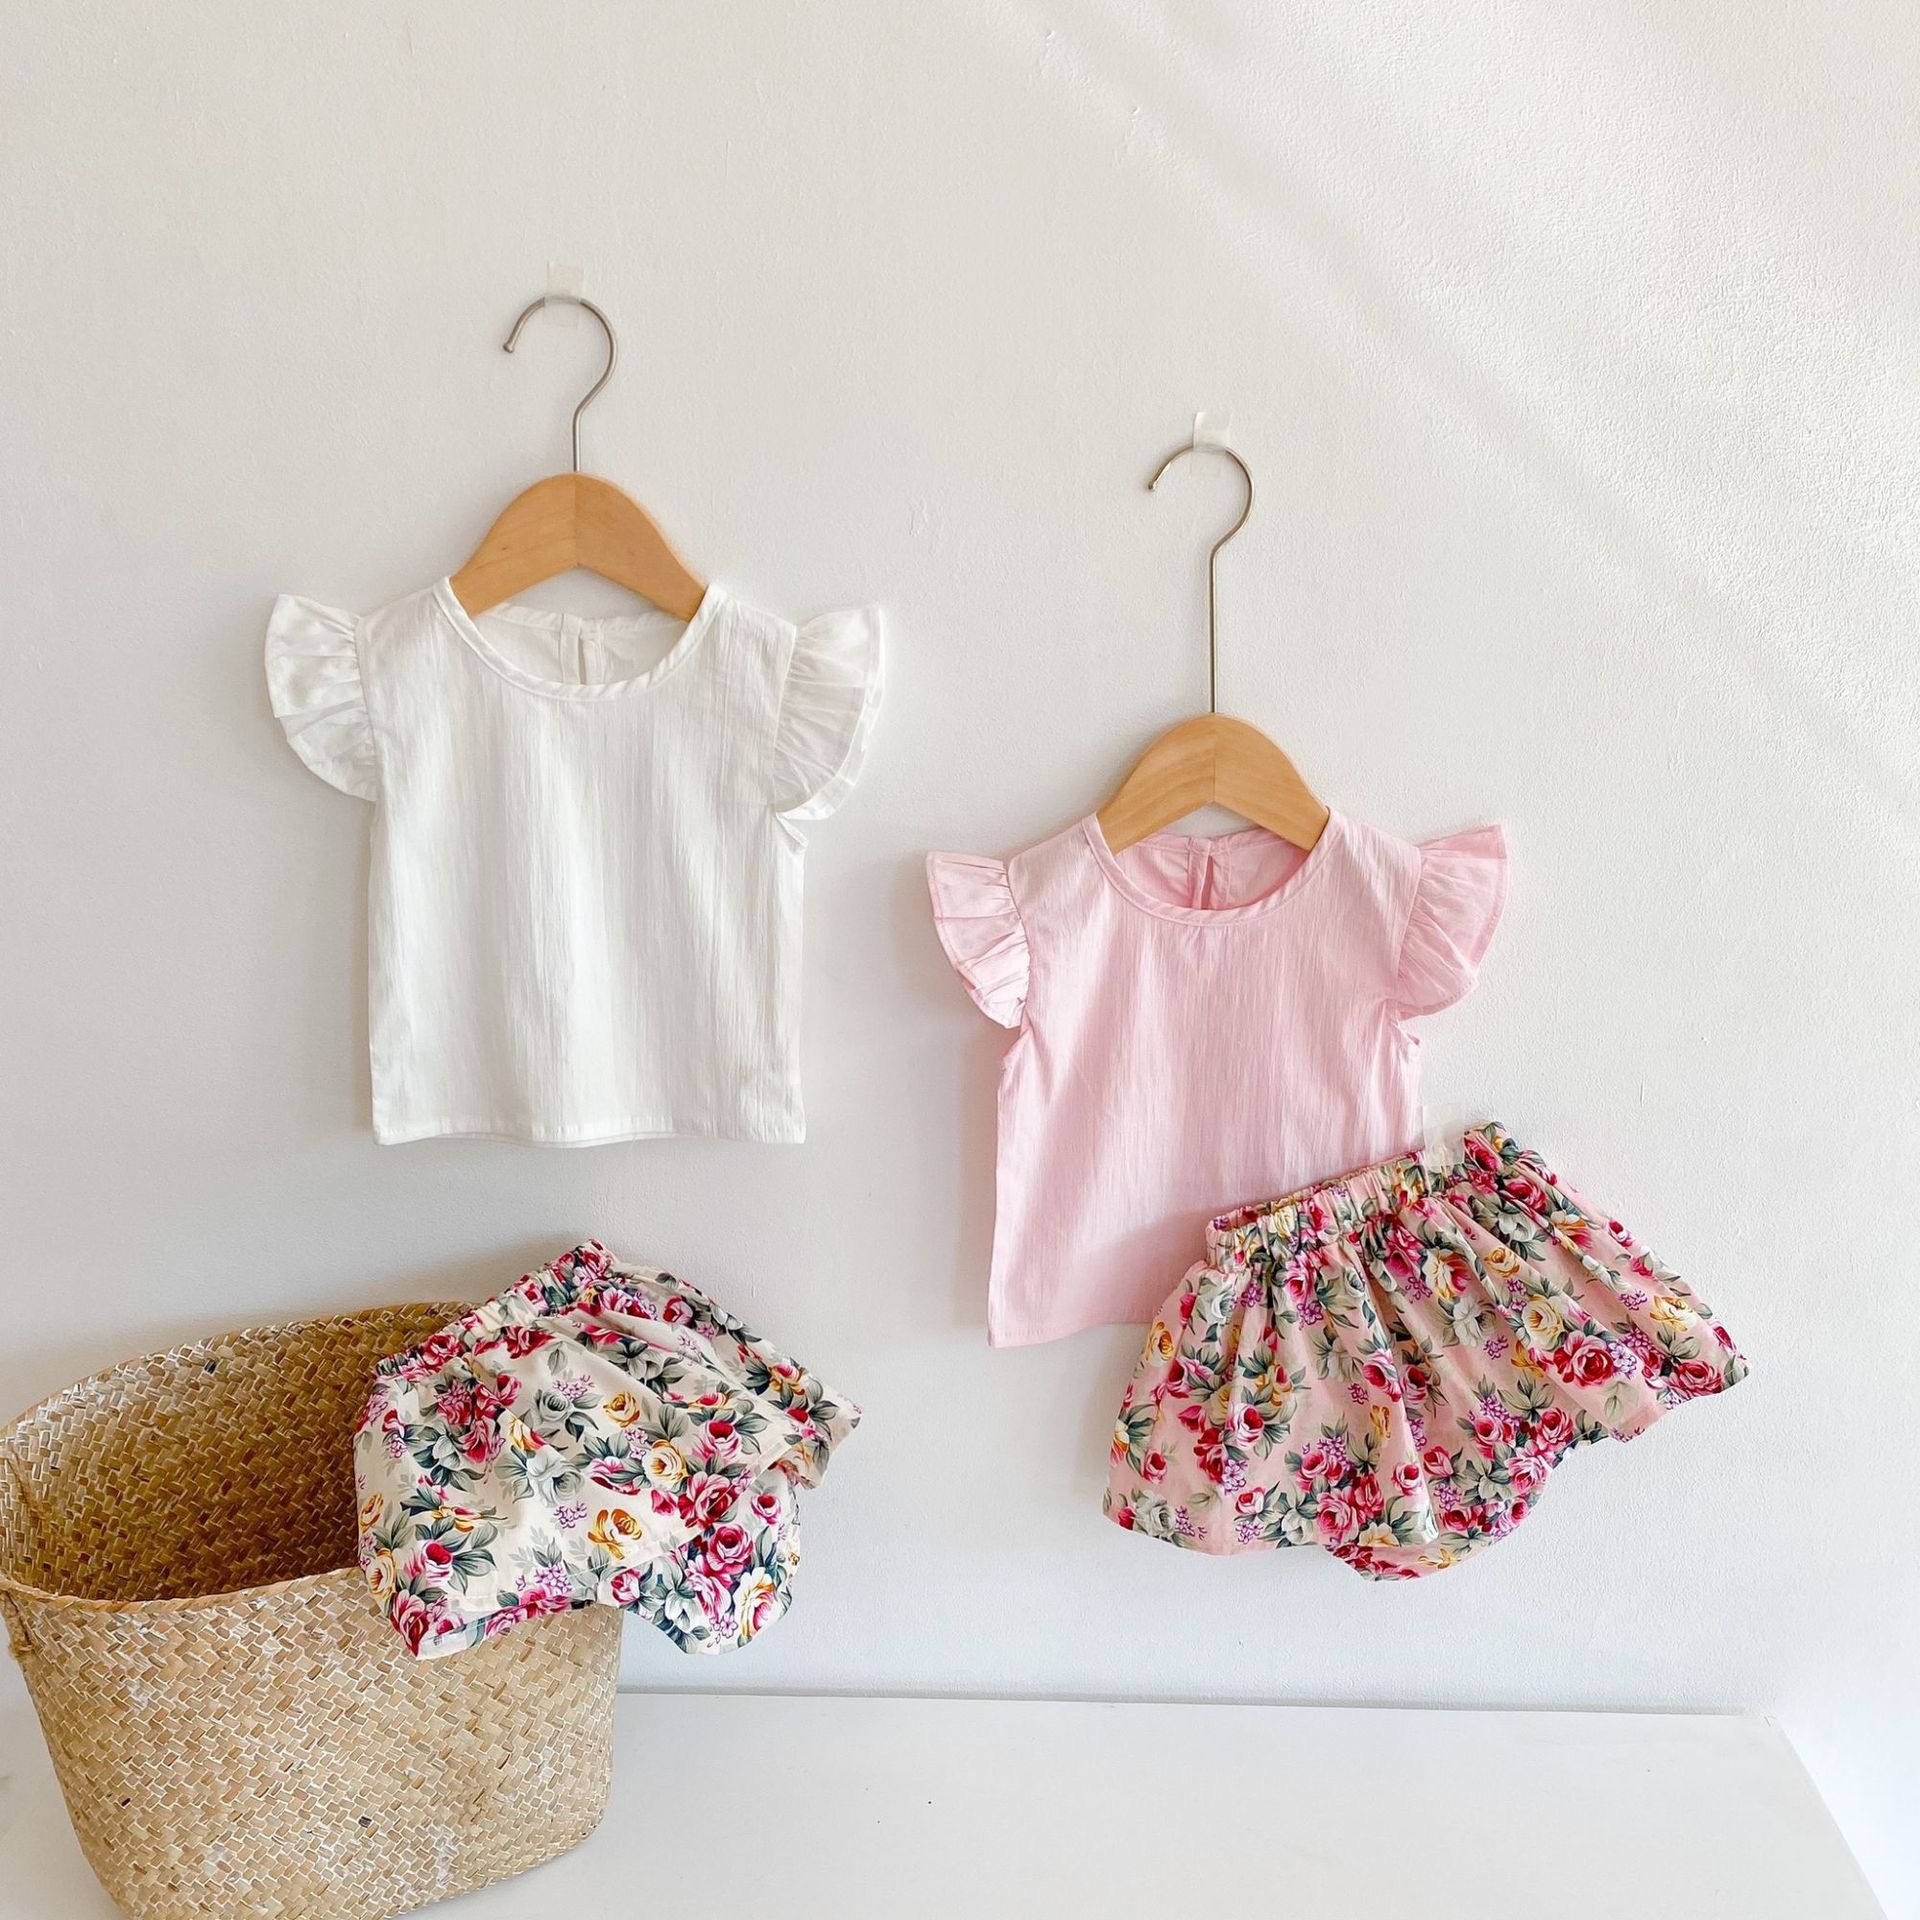 Yg brand children's clothing 2021 spring and summer new baby girl printed skirt cotton flying sleeve shirt children's suit